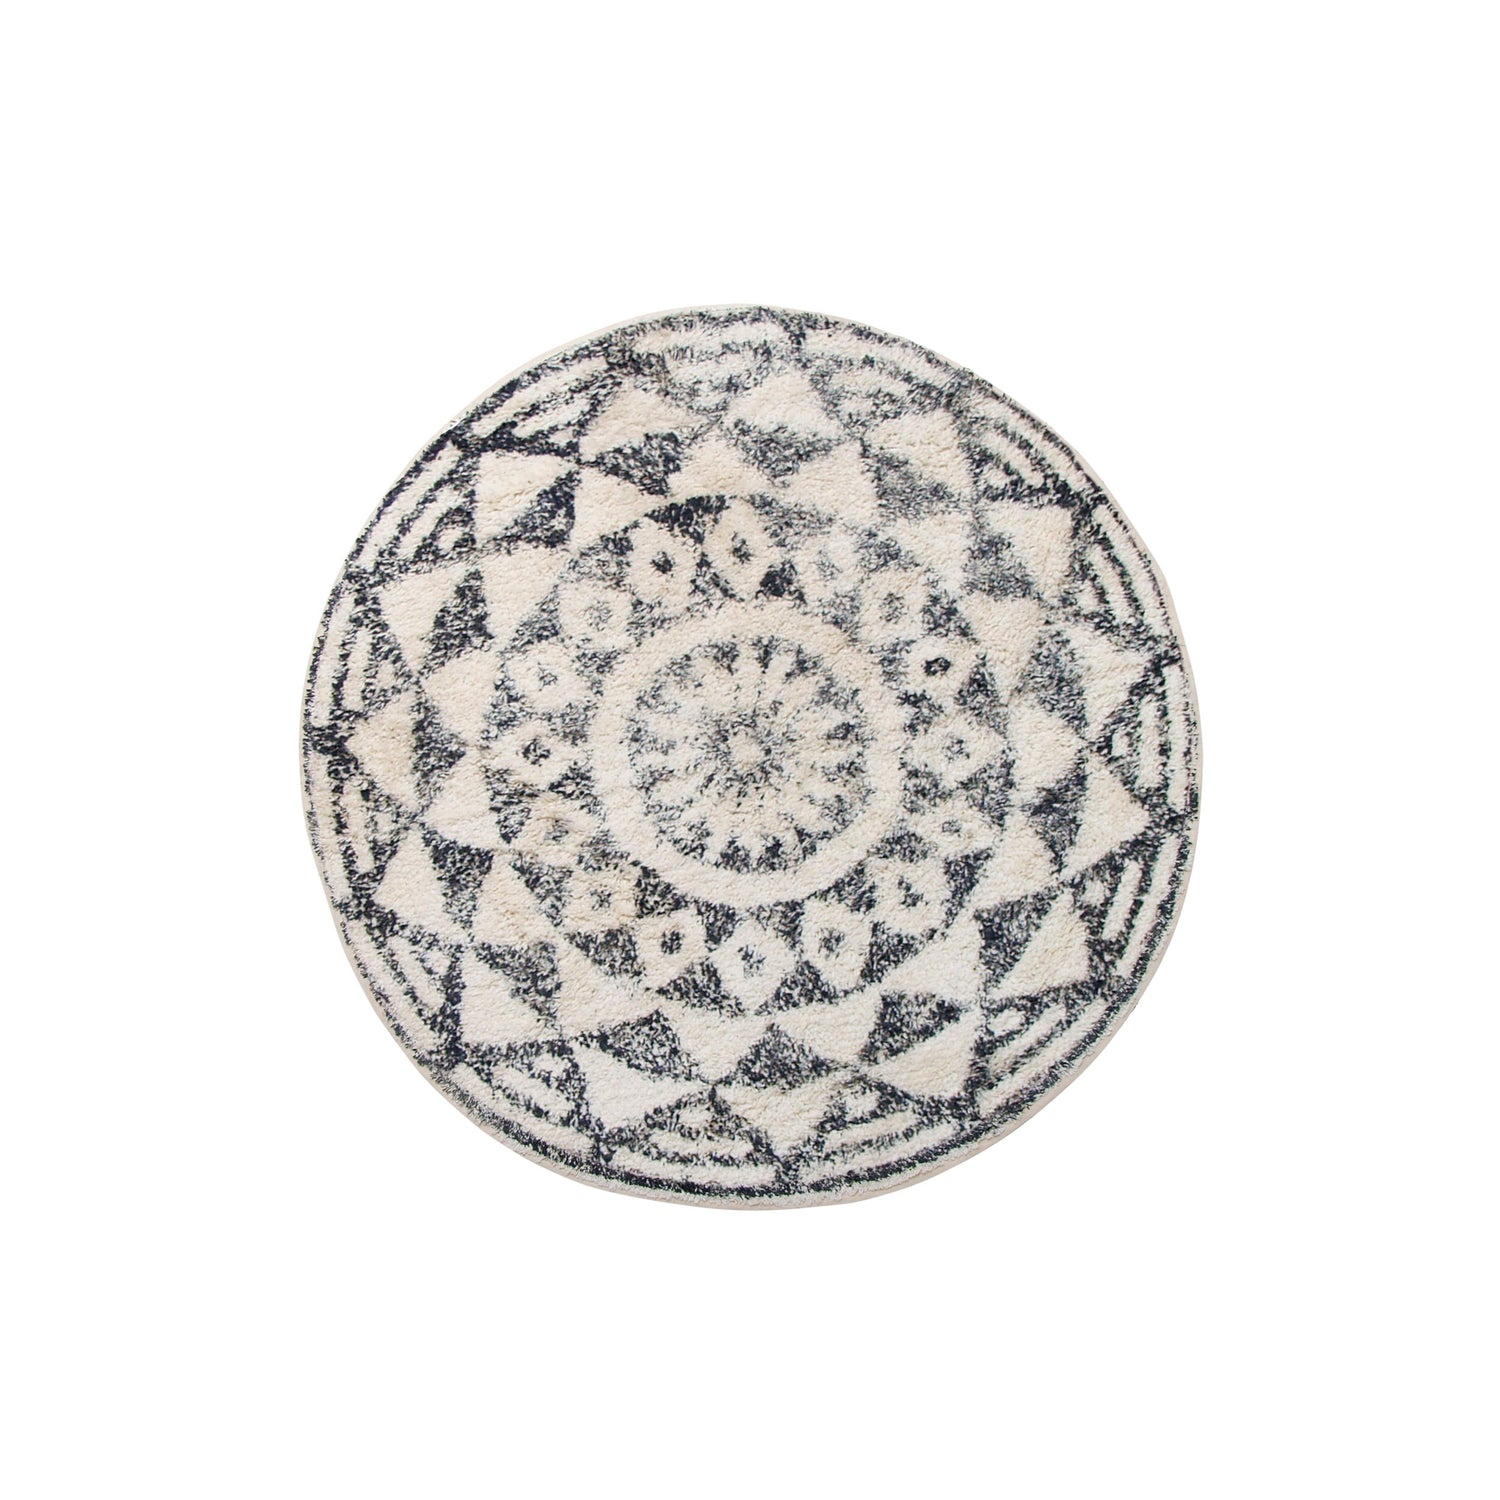 Round Bath Mat 80cm Washable Mice From Maileg And Organic Cotton From Liewood